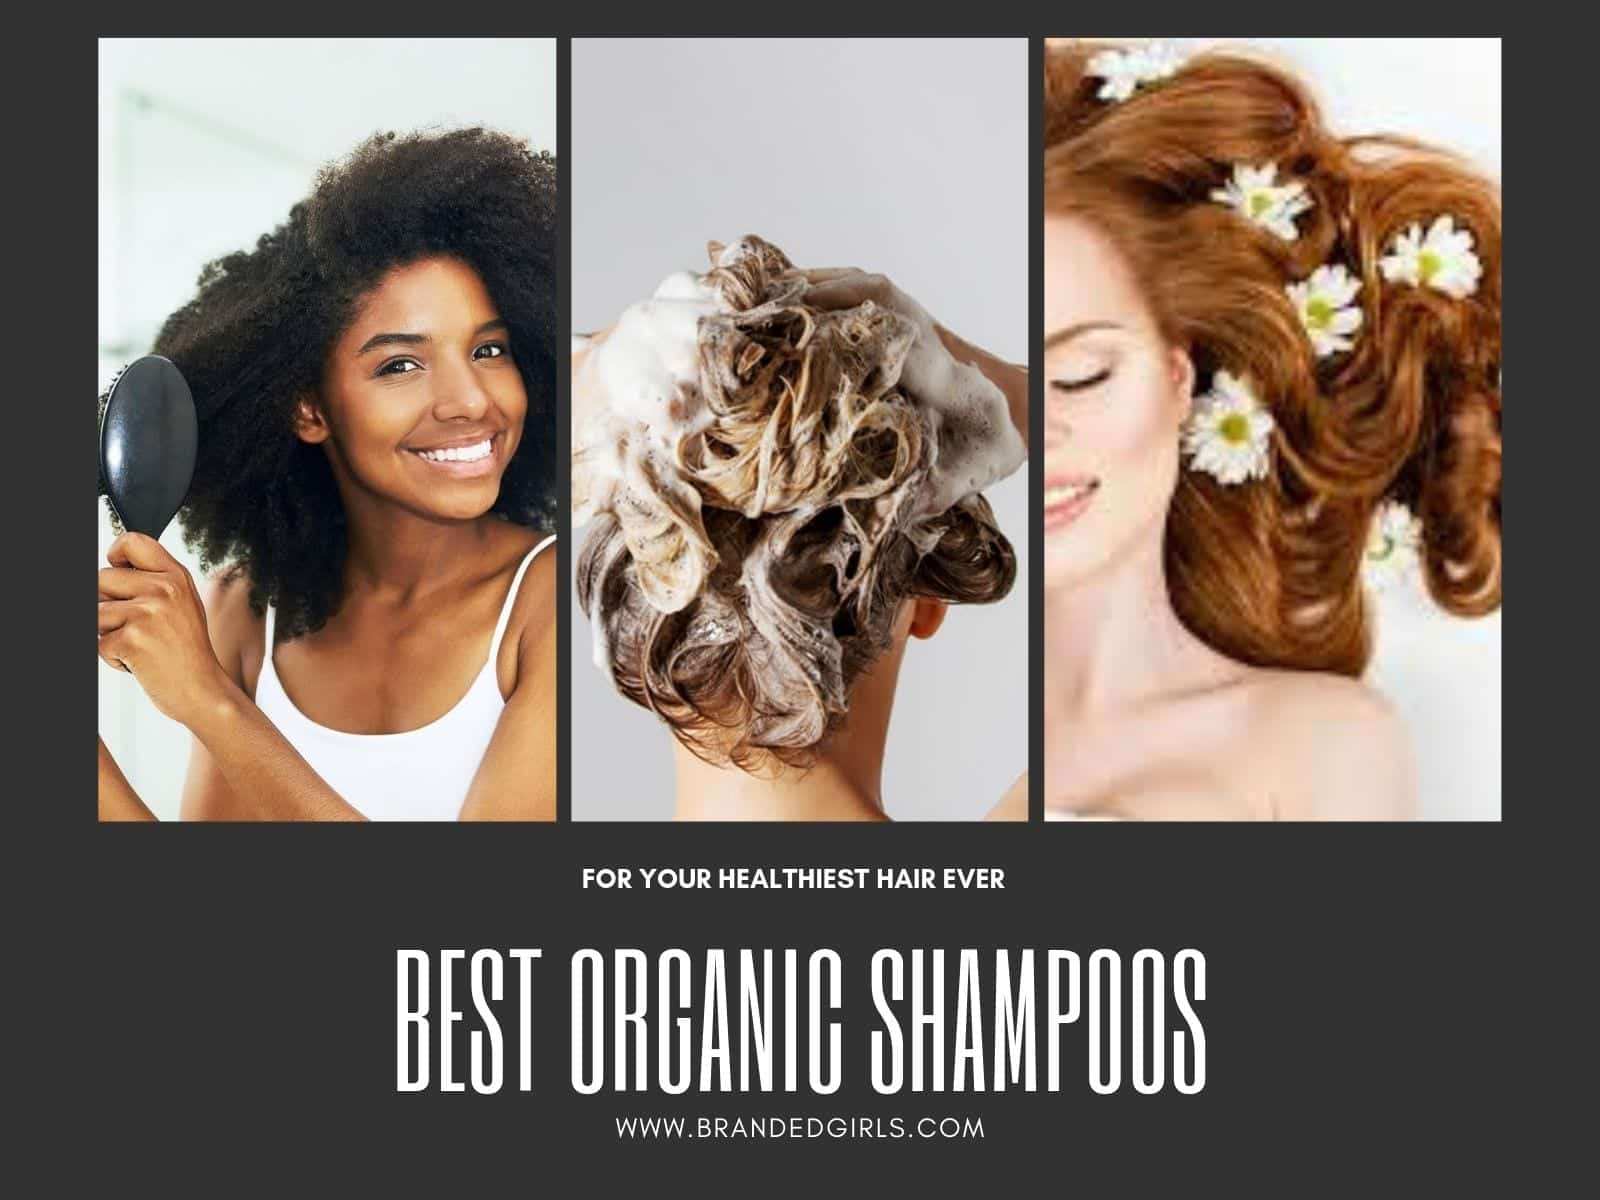 Organic-Shampoo-Brands Top 10 Organic & Natural Shampoo Brands For All Hair Types